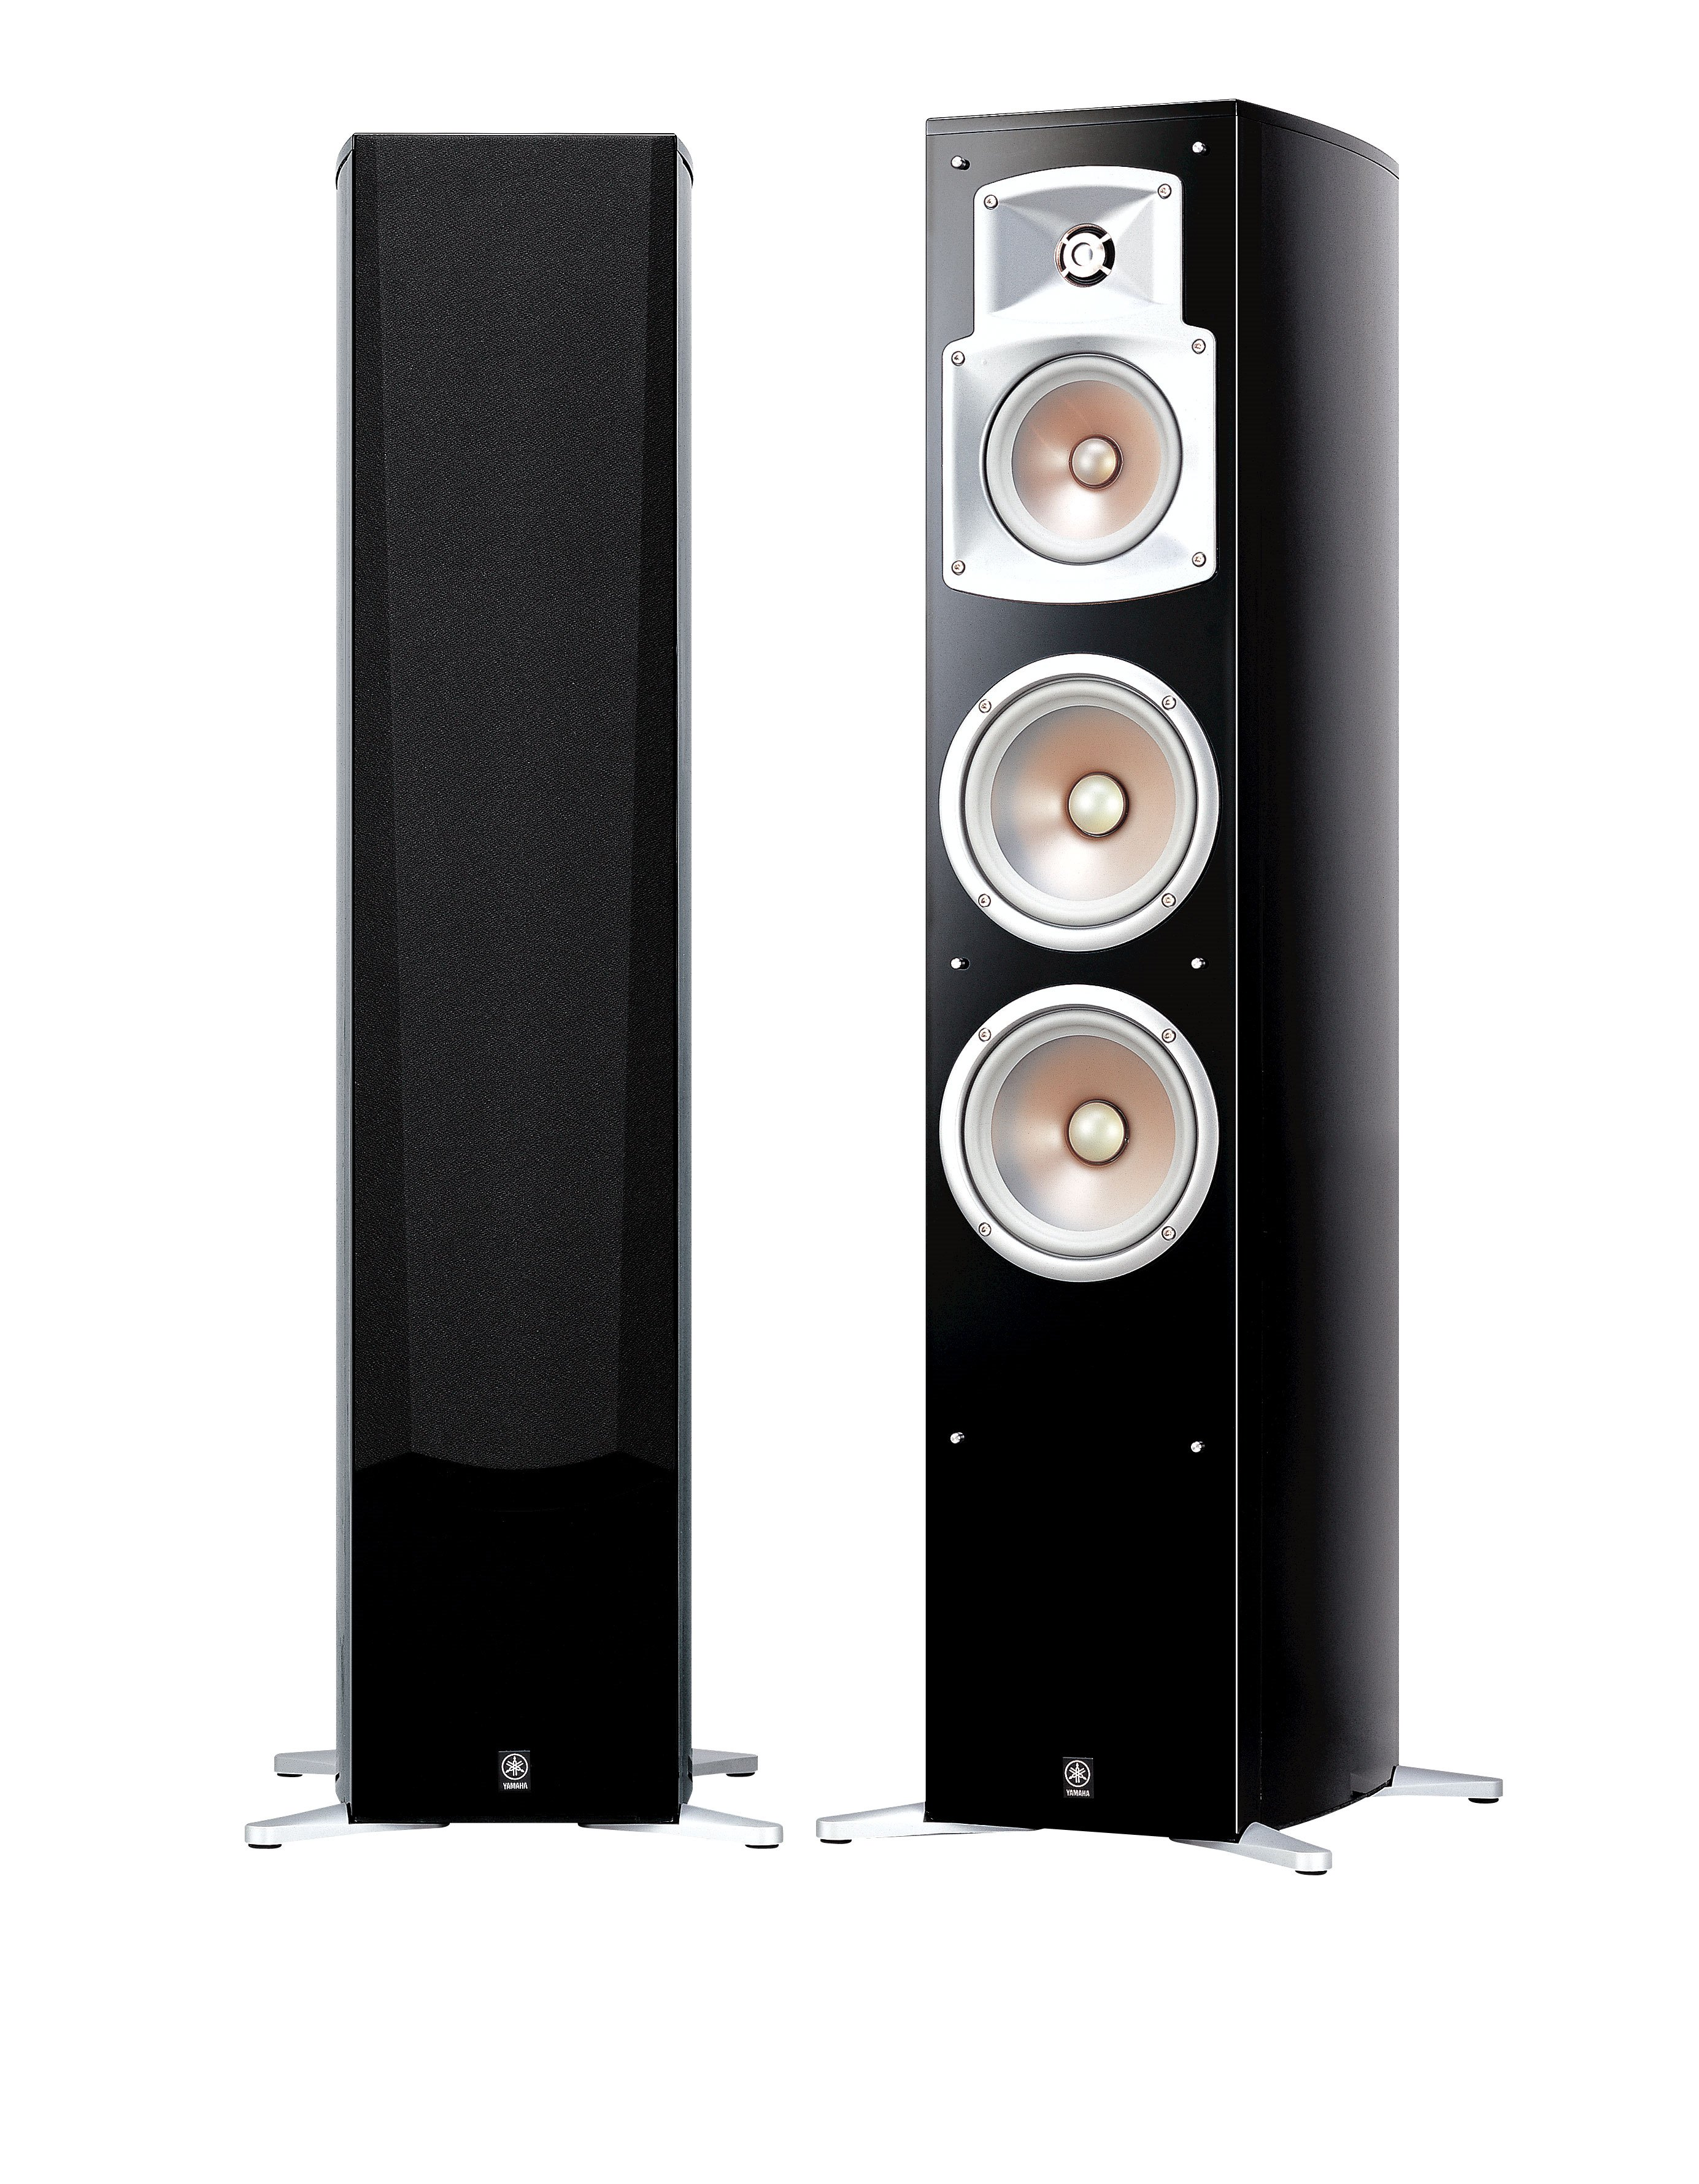 Speaker Systems Audio Visual Products Yamaha India 3 Way Switch Ns 555 Bass Reflex Tower